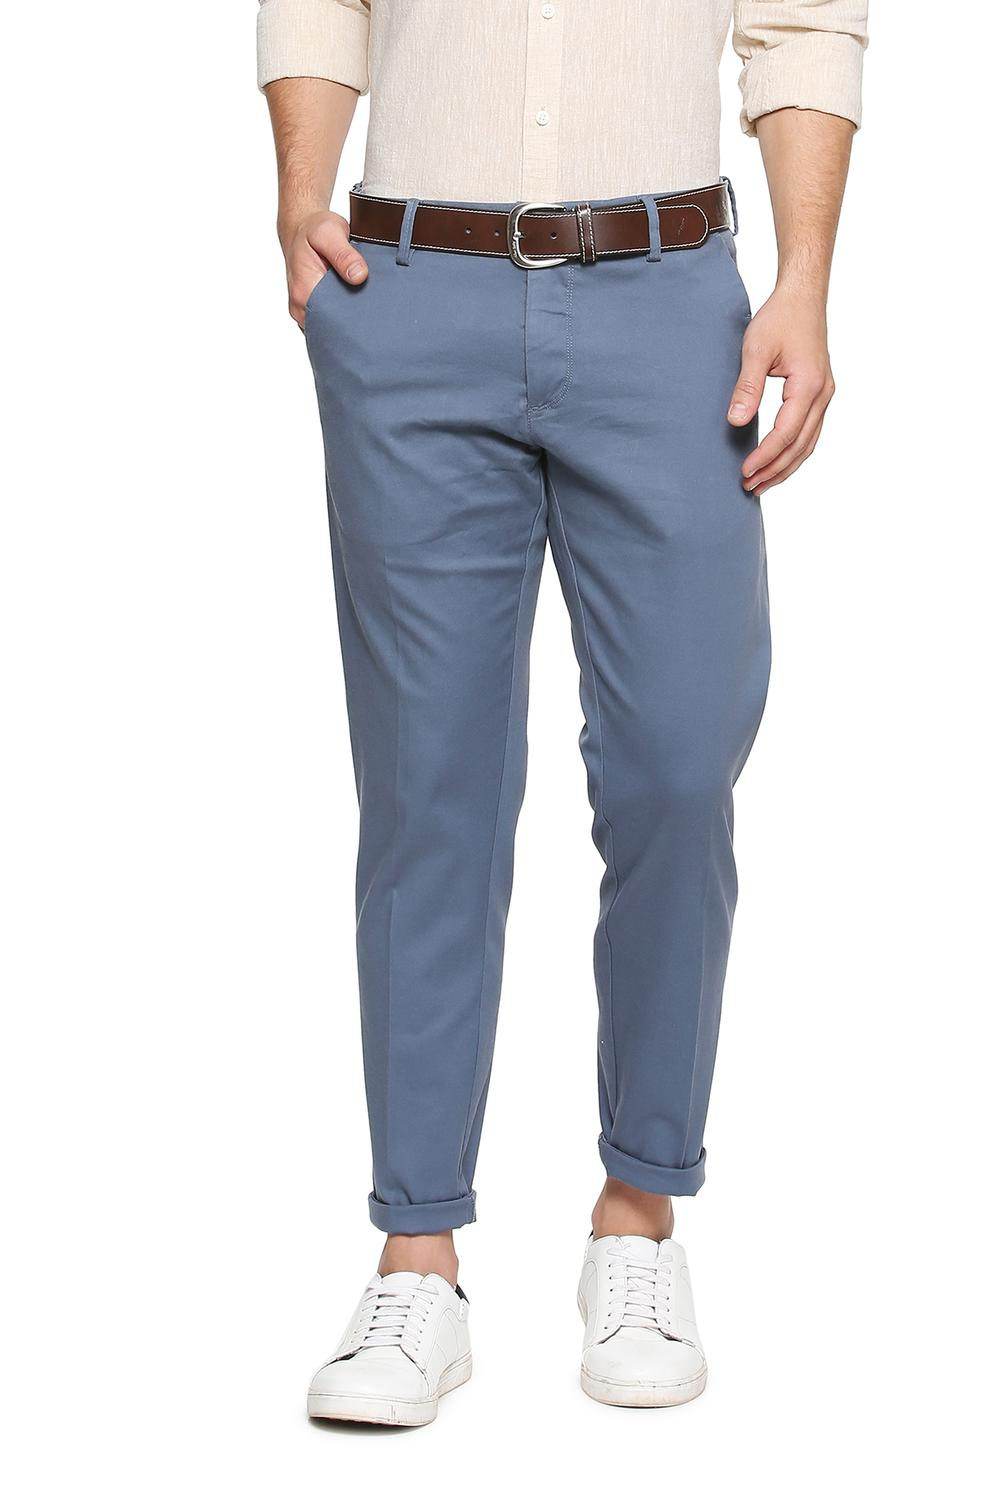 401b4d7e581 Allen Solly Trousers   Chinos